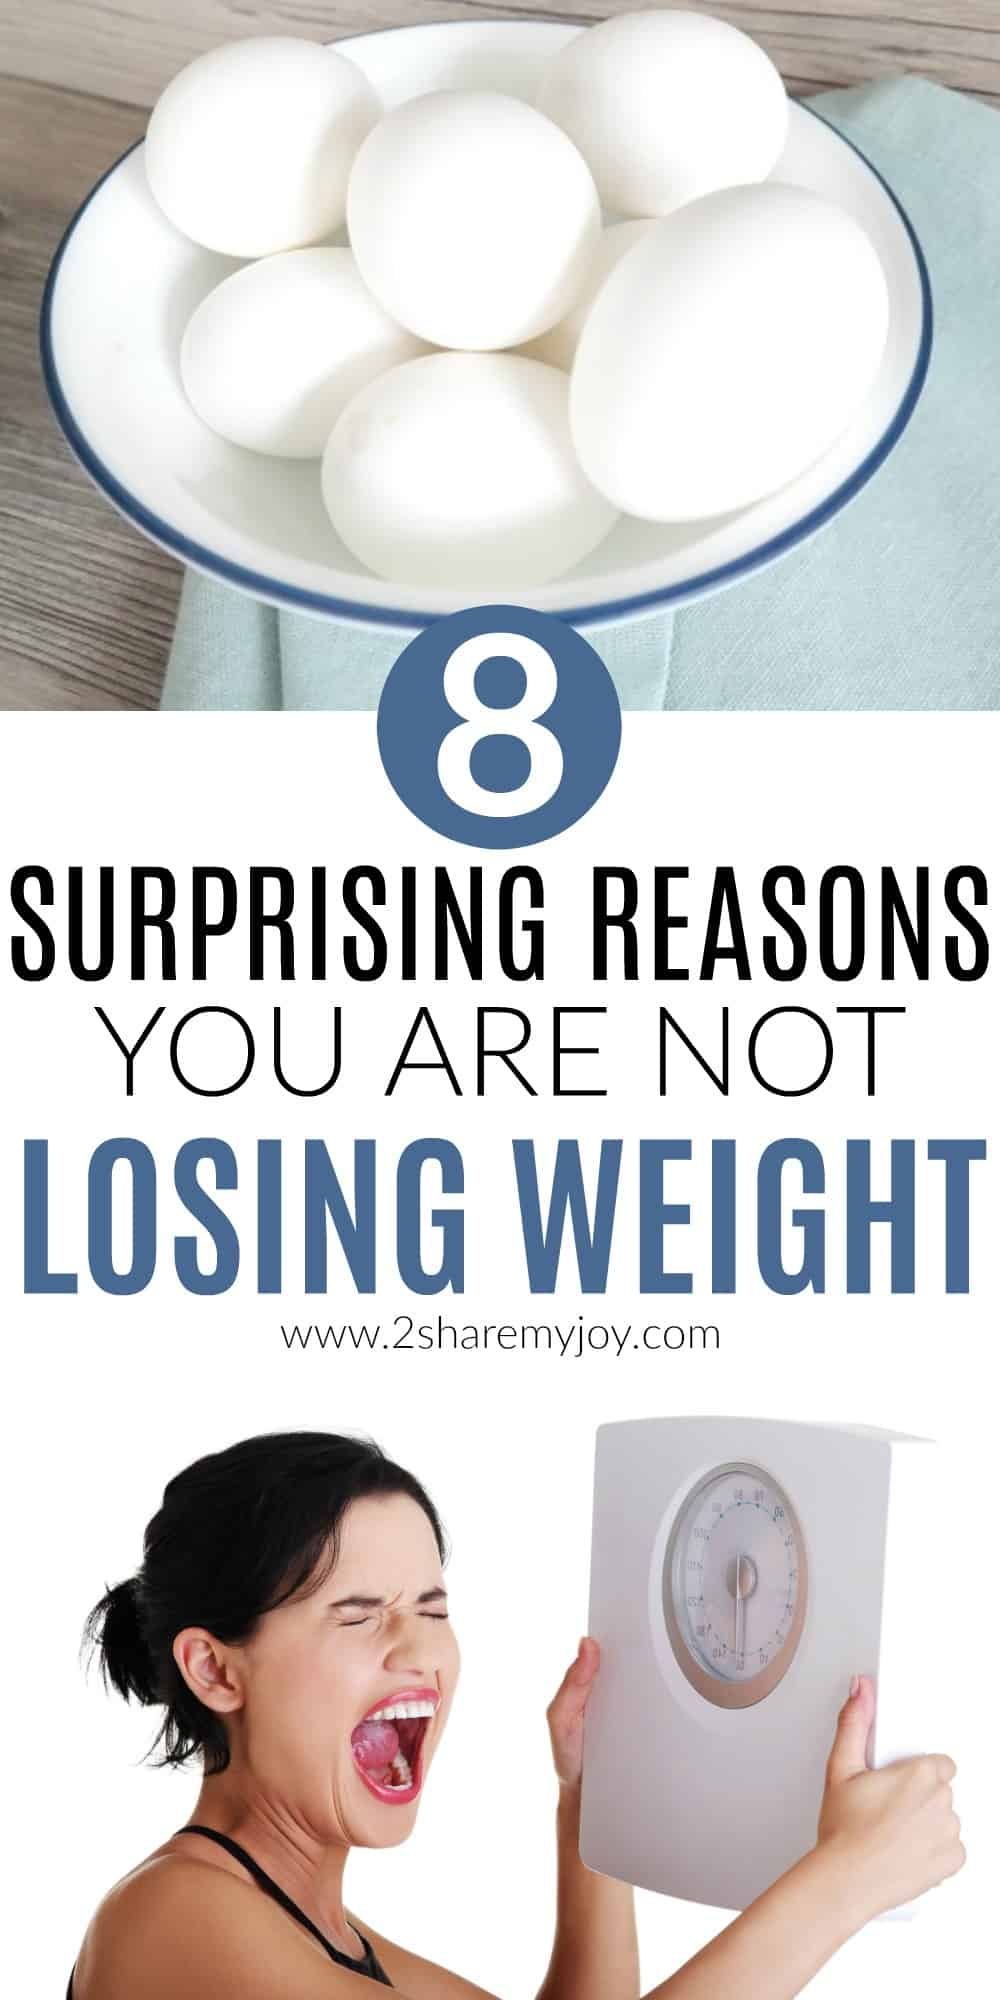 You might be asking yourself why am I not losing weight? Maybe you've tried the keto diet or the low carb diet but with no success? Click through and read 8 surprising reasons you are still not losing weight. Get motivated, get better health, and start your weightloss.#weightlossmistakes #notlosingweight #weightloss